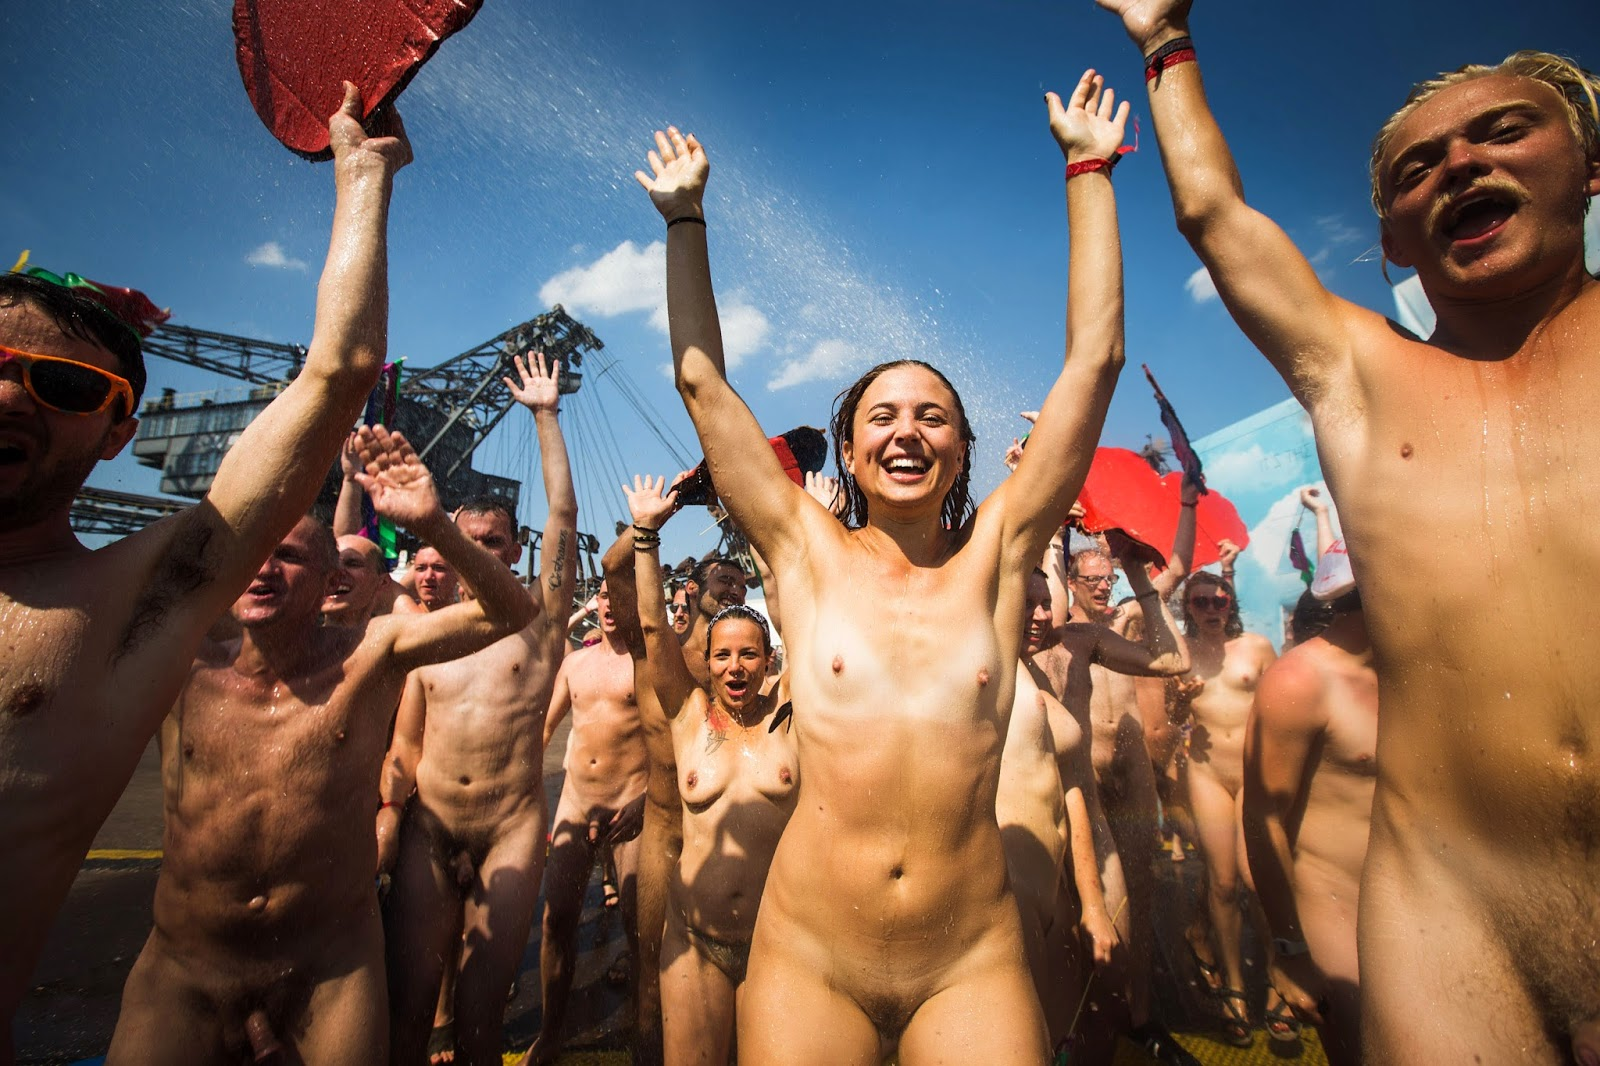 Nude festival porn images